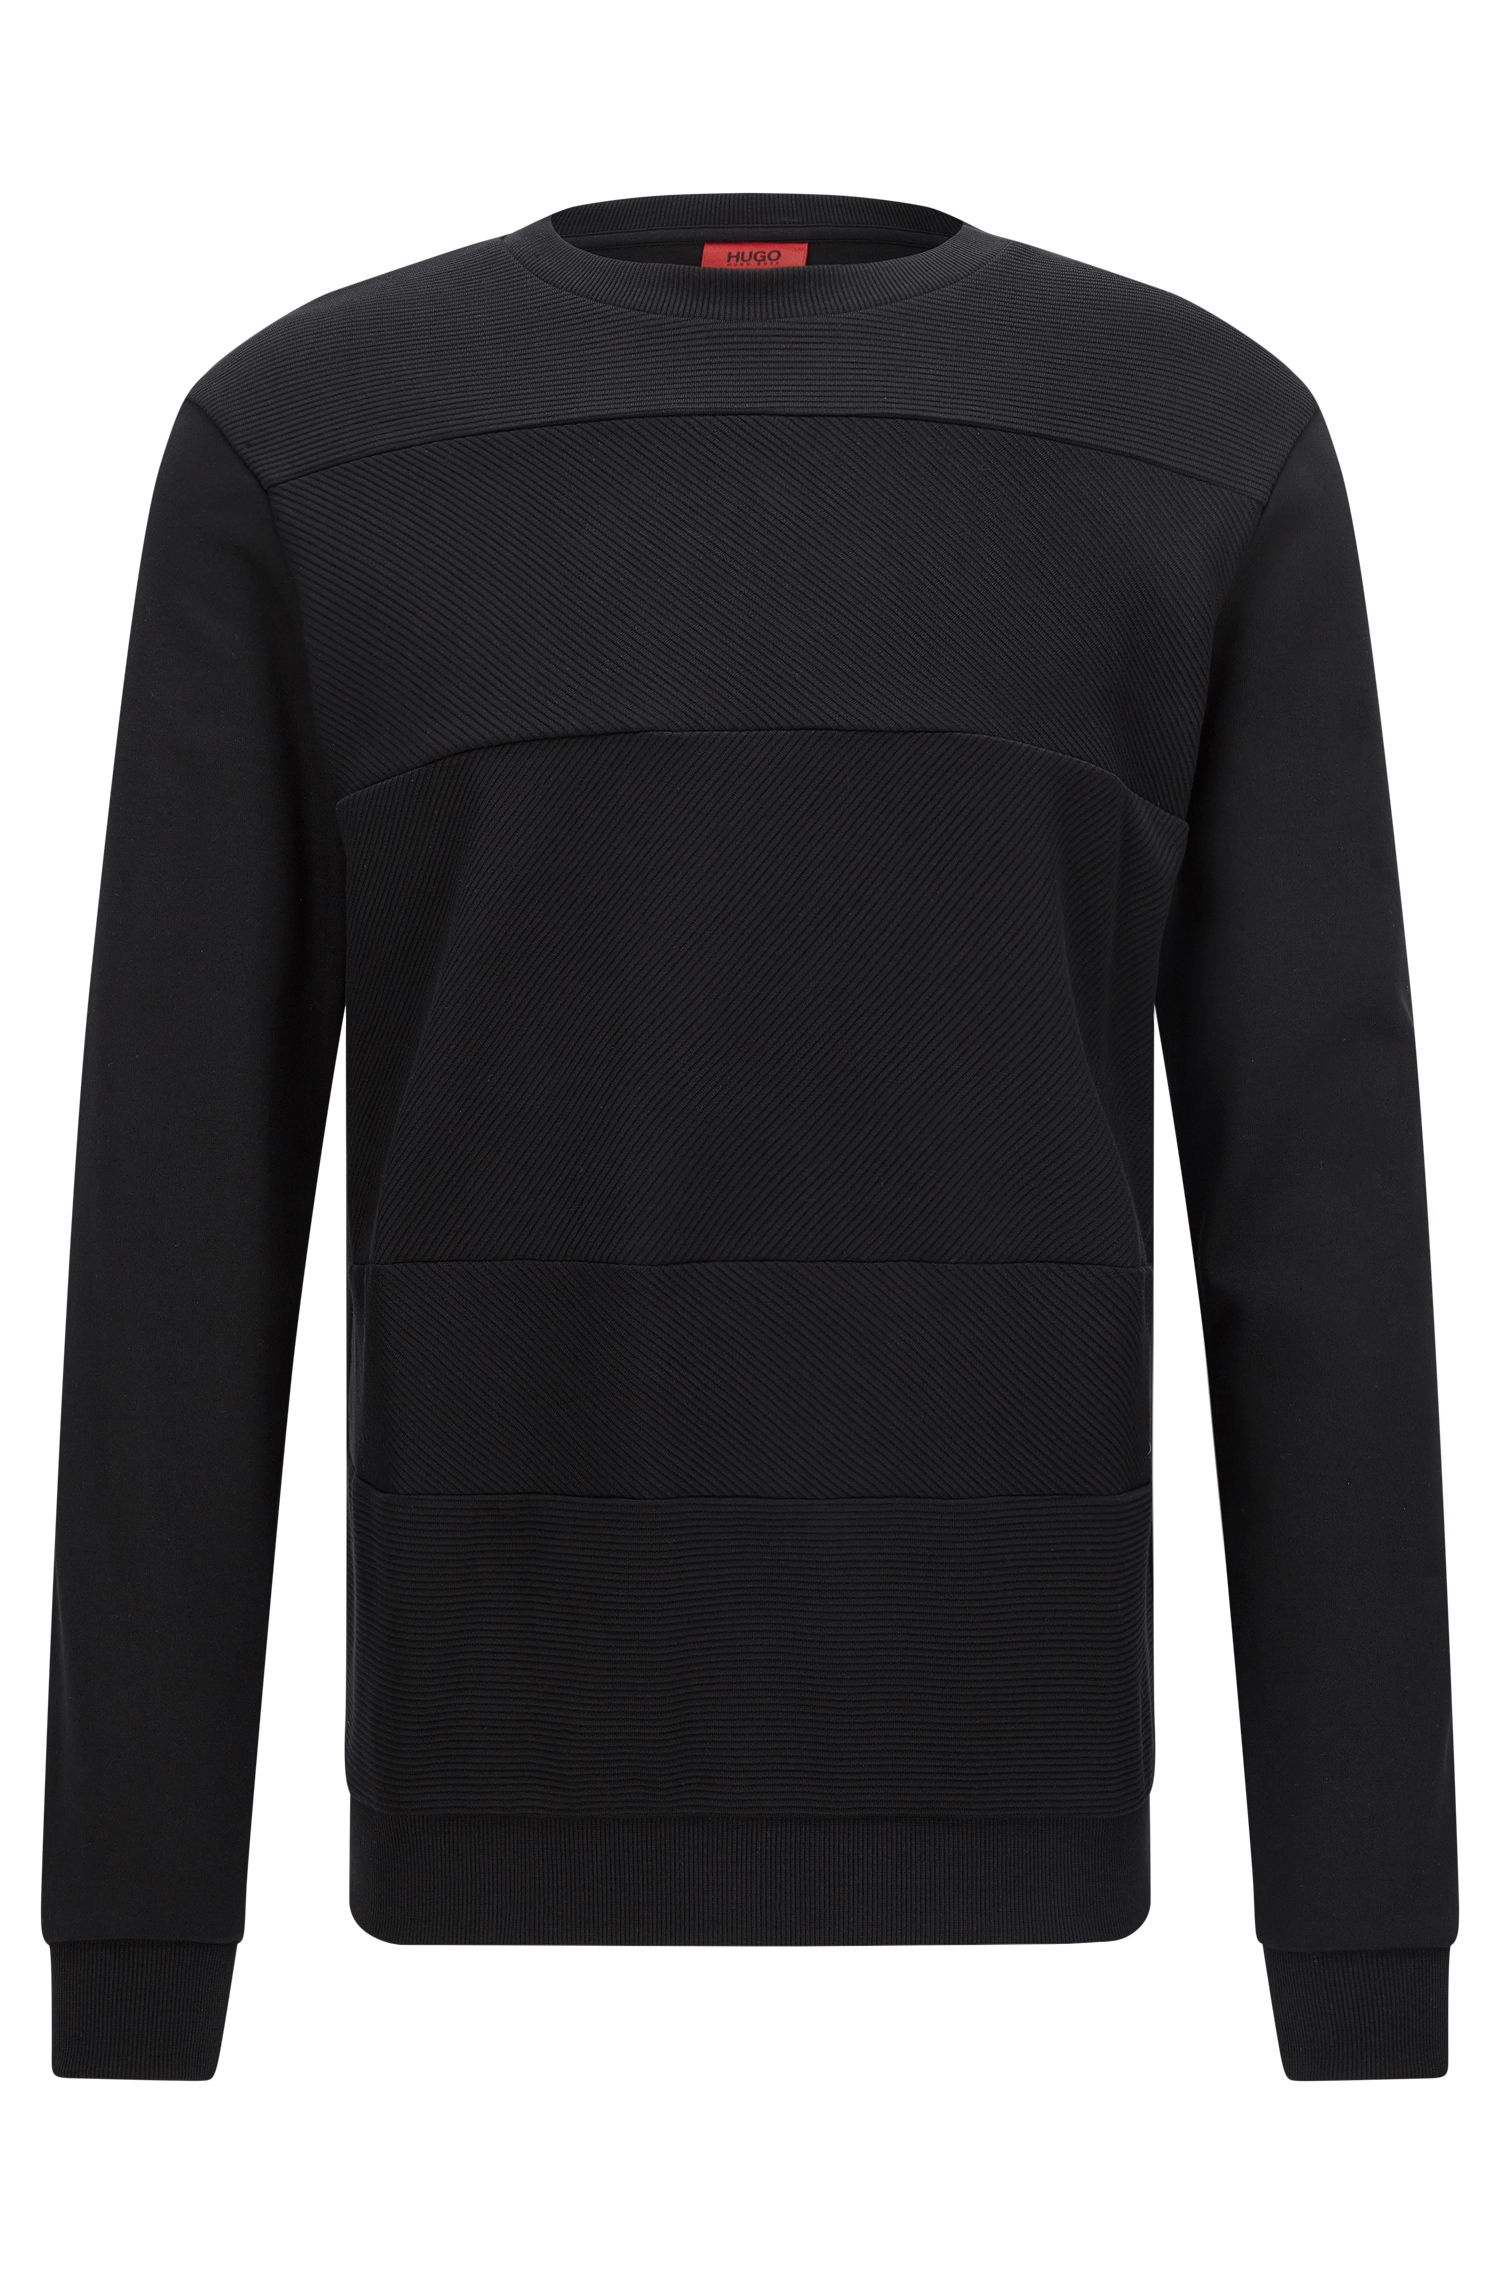 Relaxed-Fit Sweatshirt aus Baumwolle mit Struktur-Mix